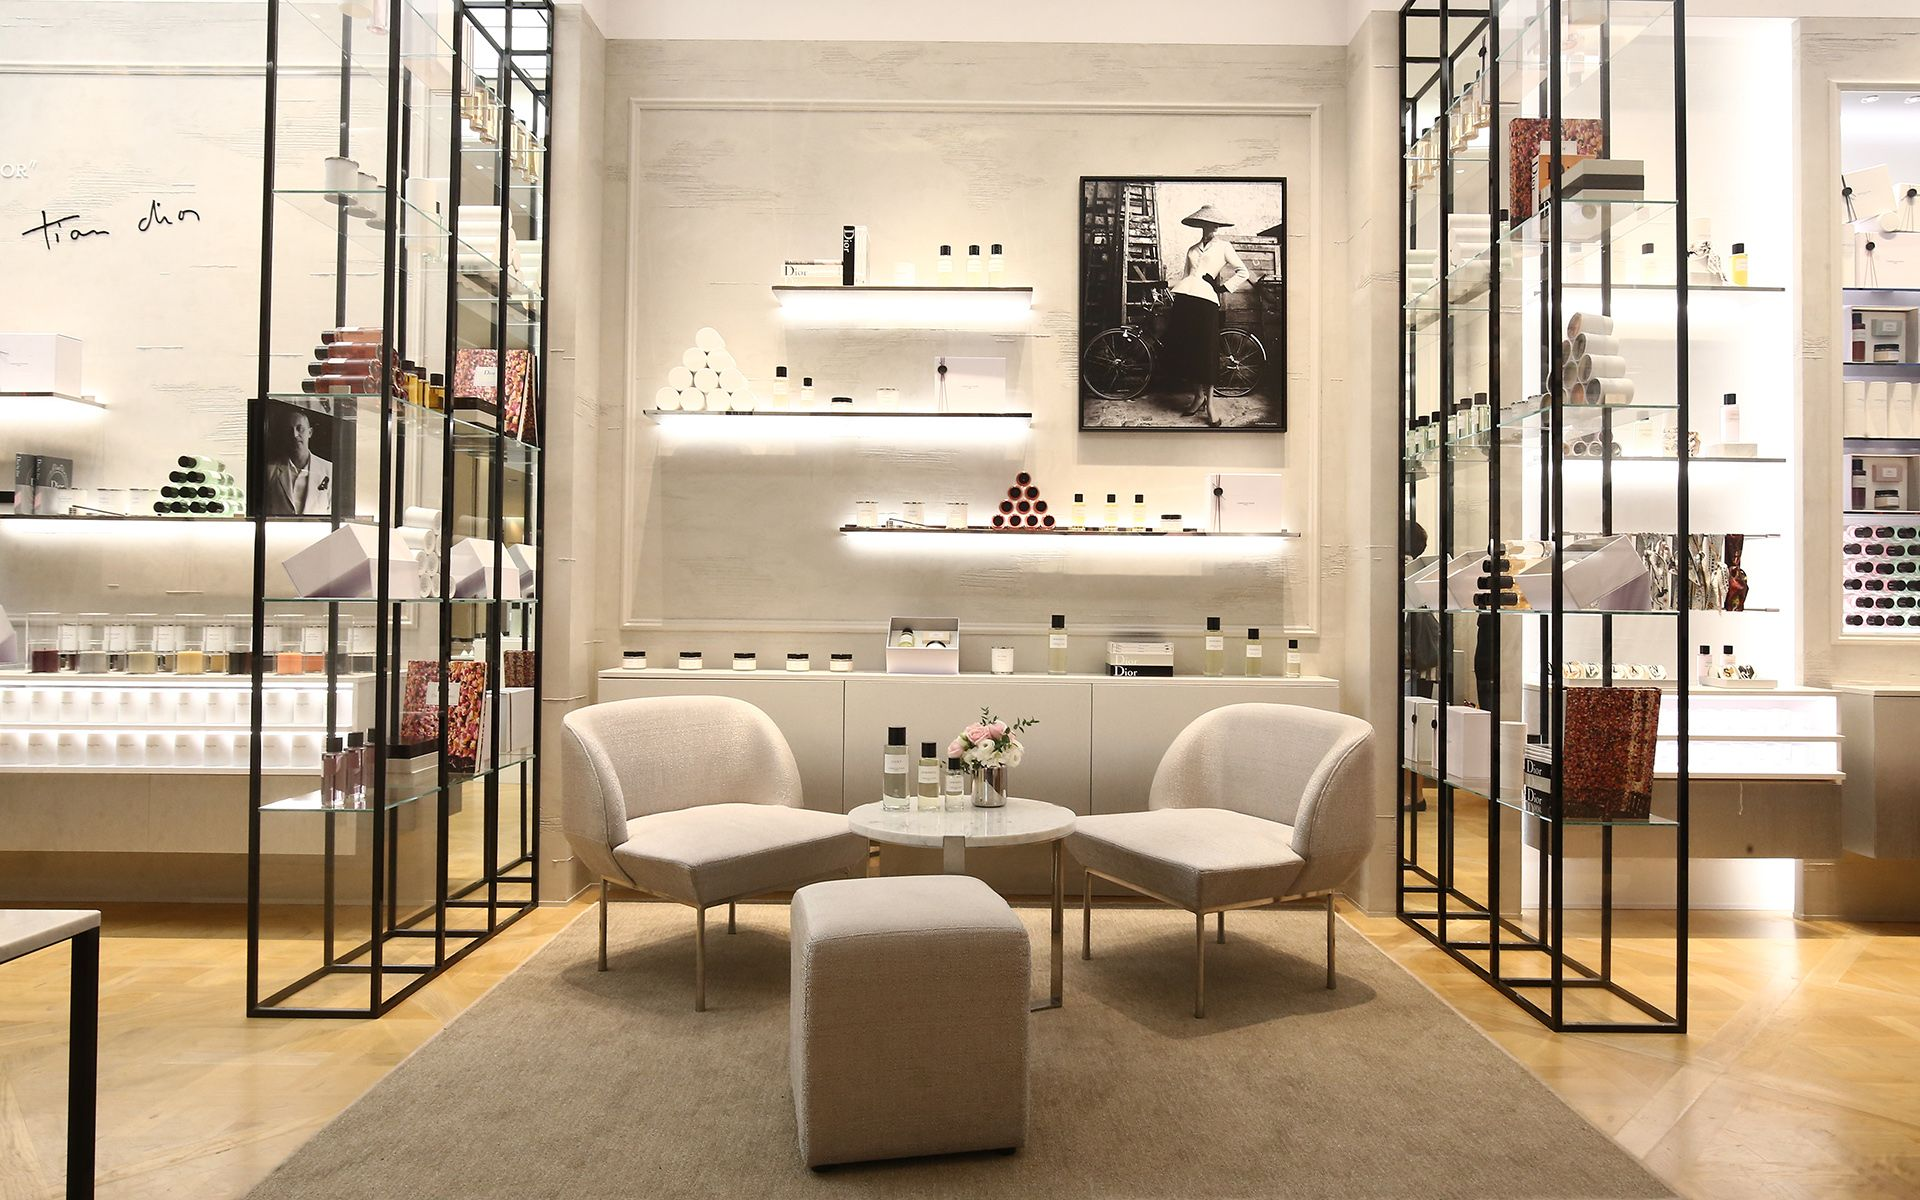 Maison Christian Dior Montauroux the coolest new stores in time for your year-end retail